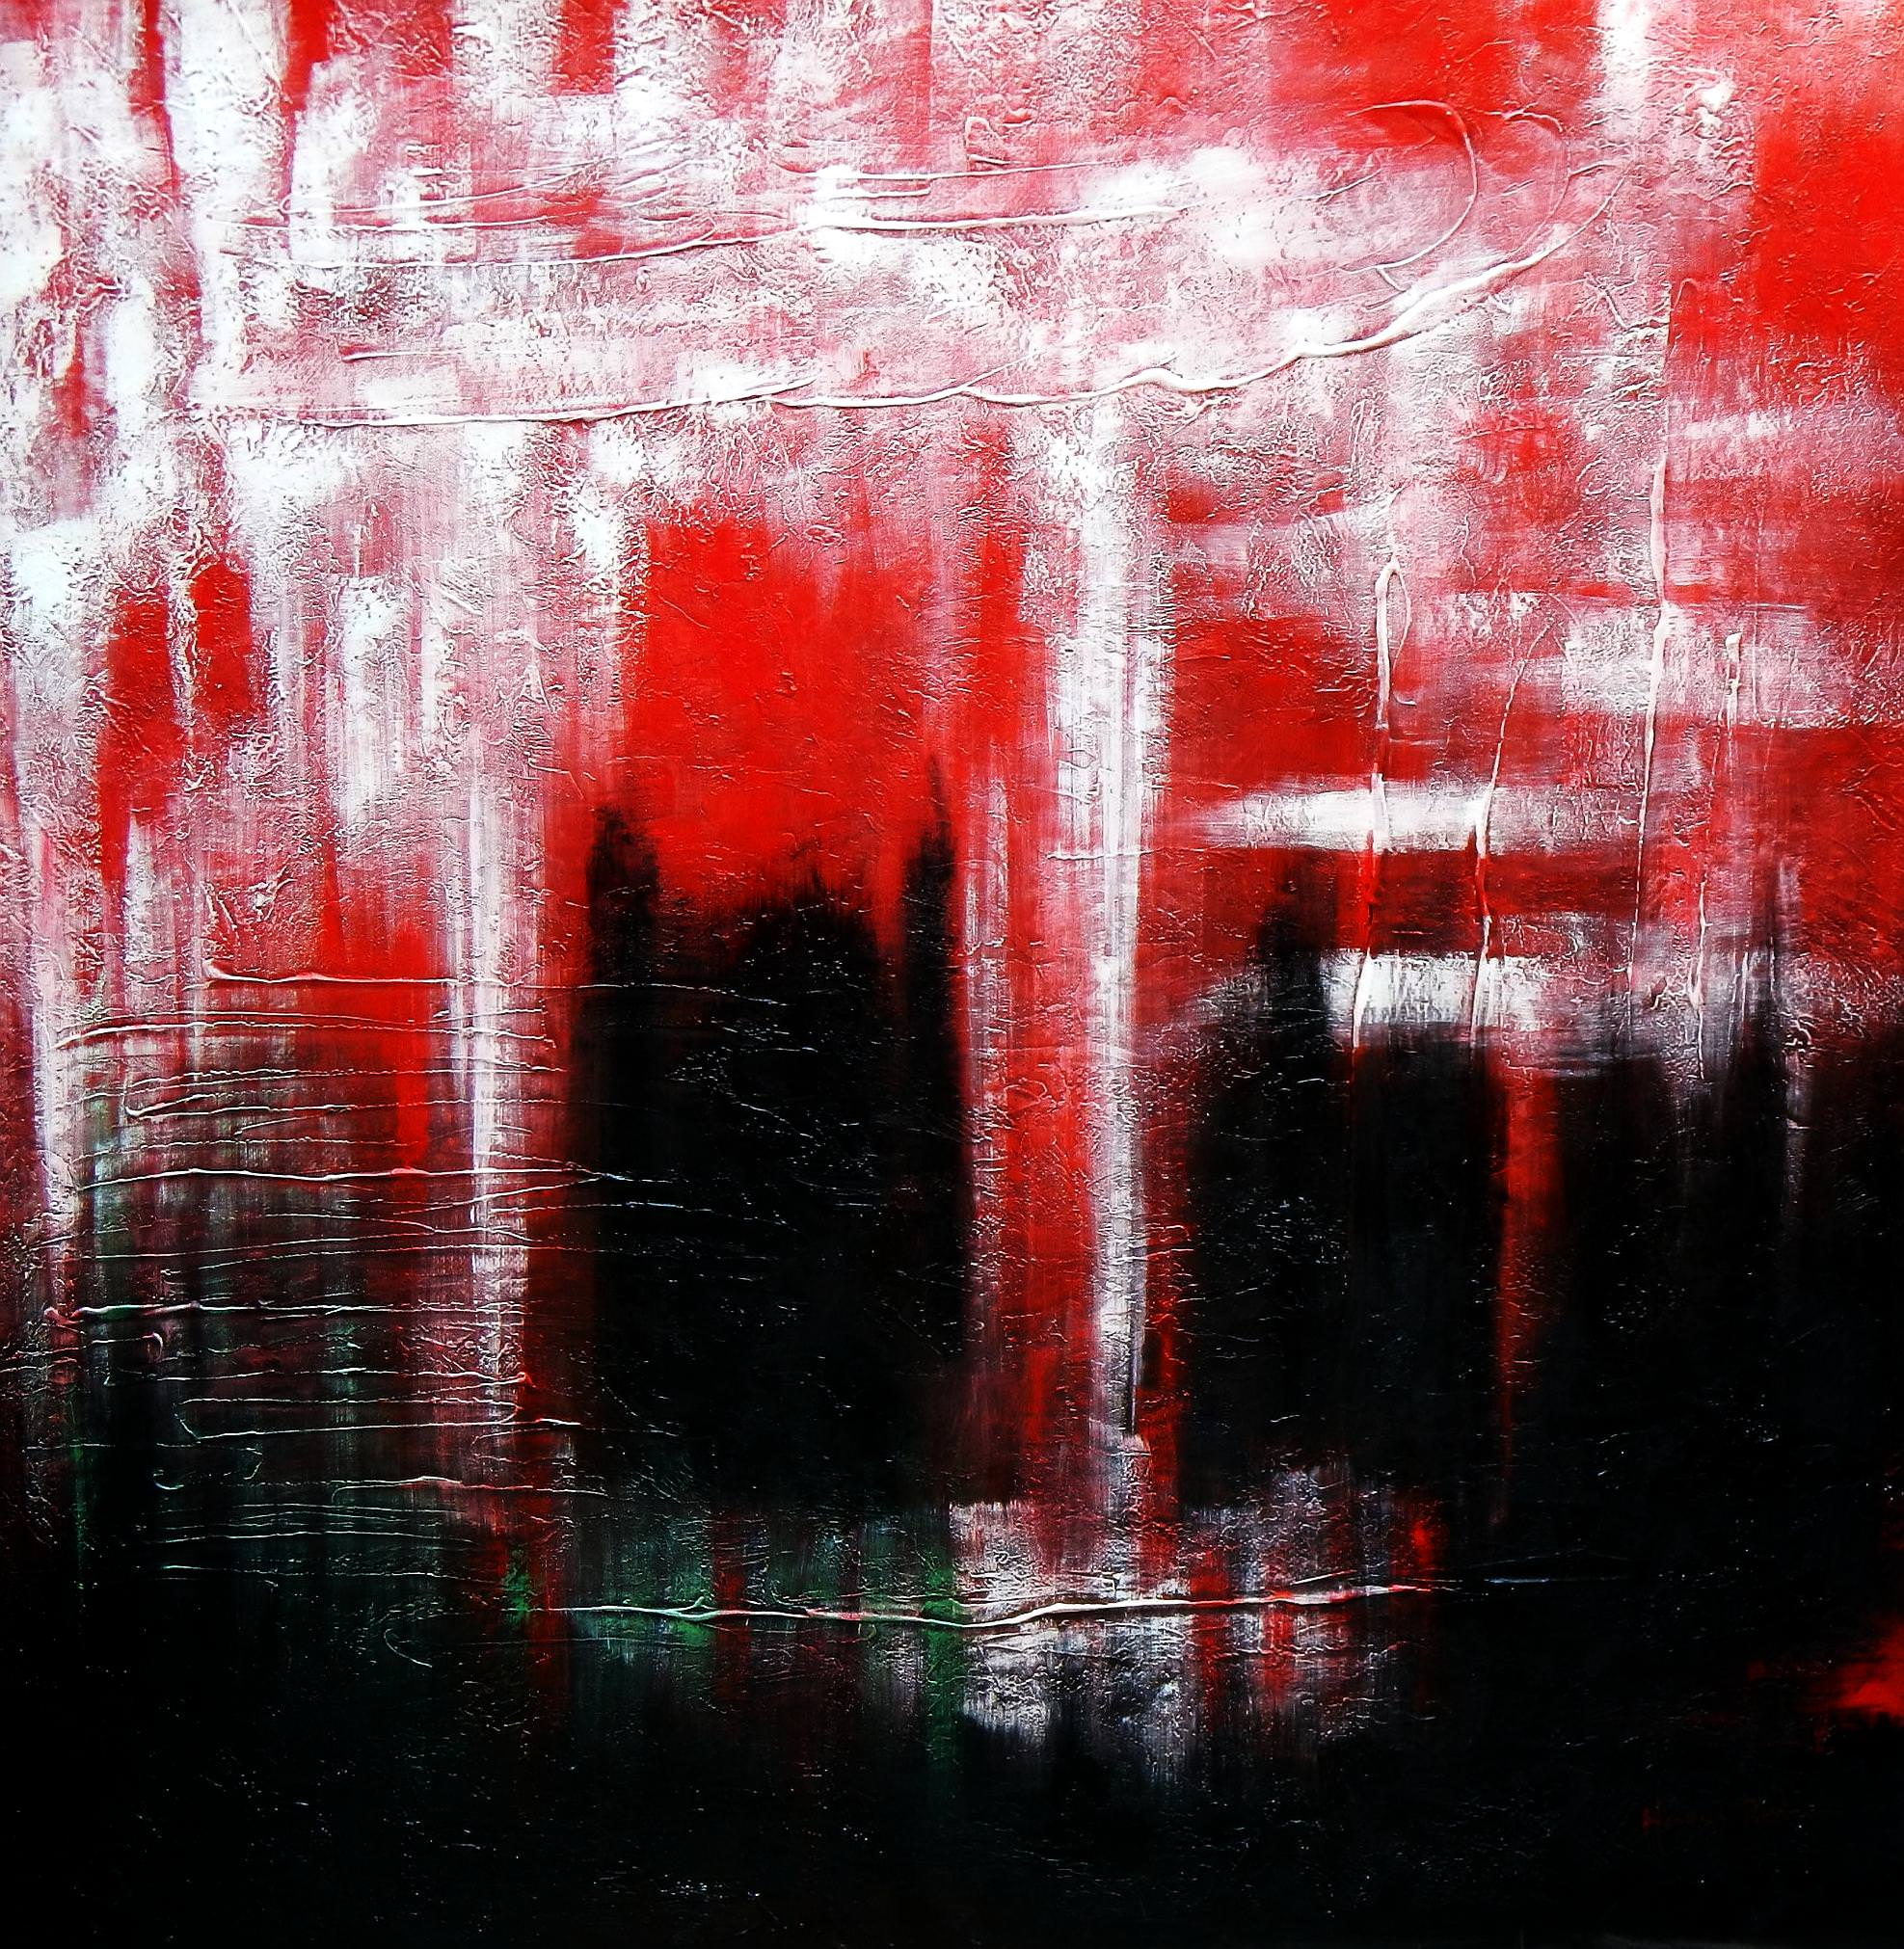 Abstract - Legacy of Fire III m93000 120x120cm abstraktes Ölbild handgemalt